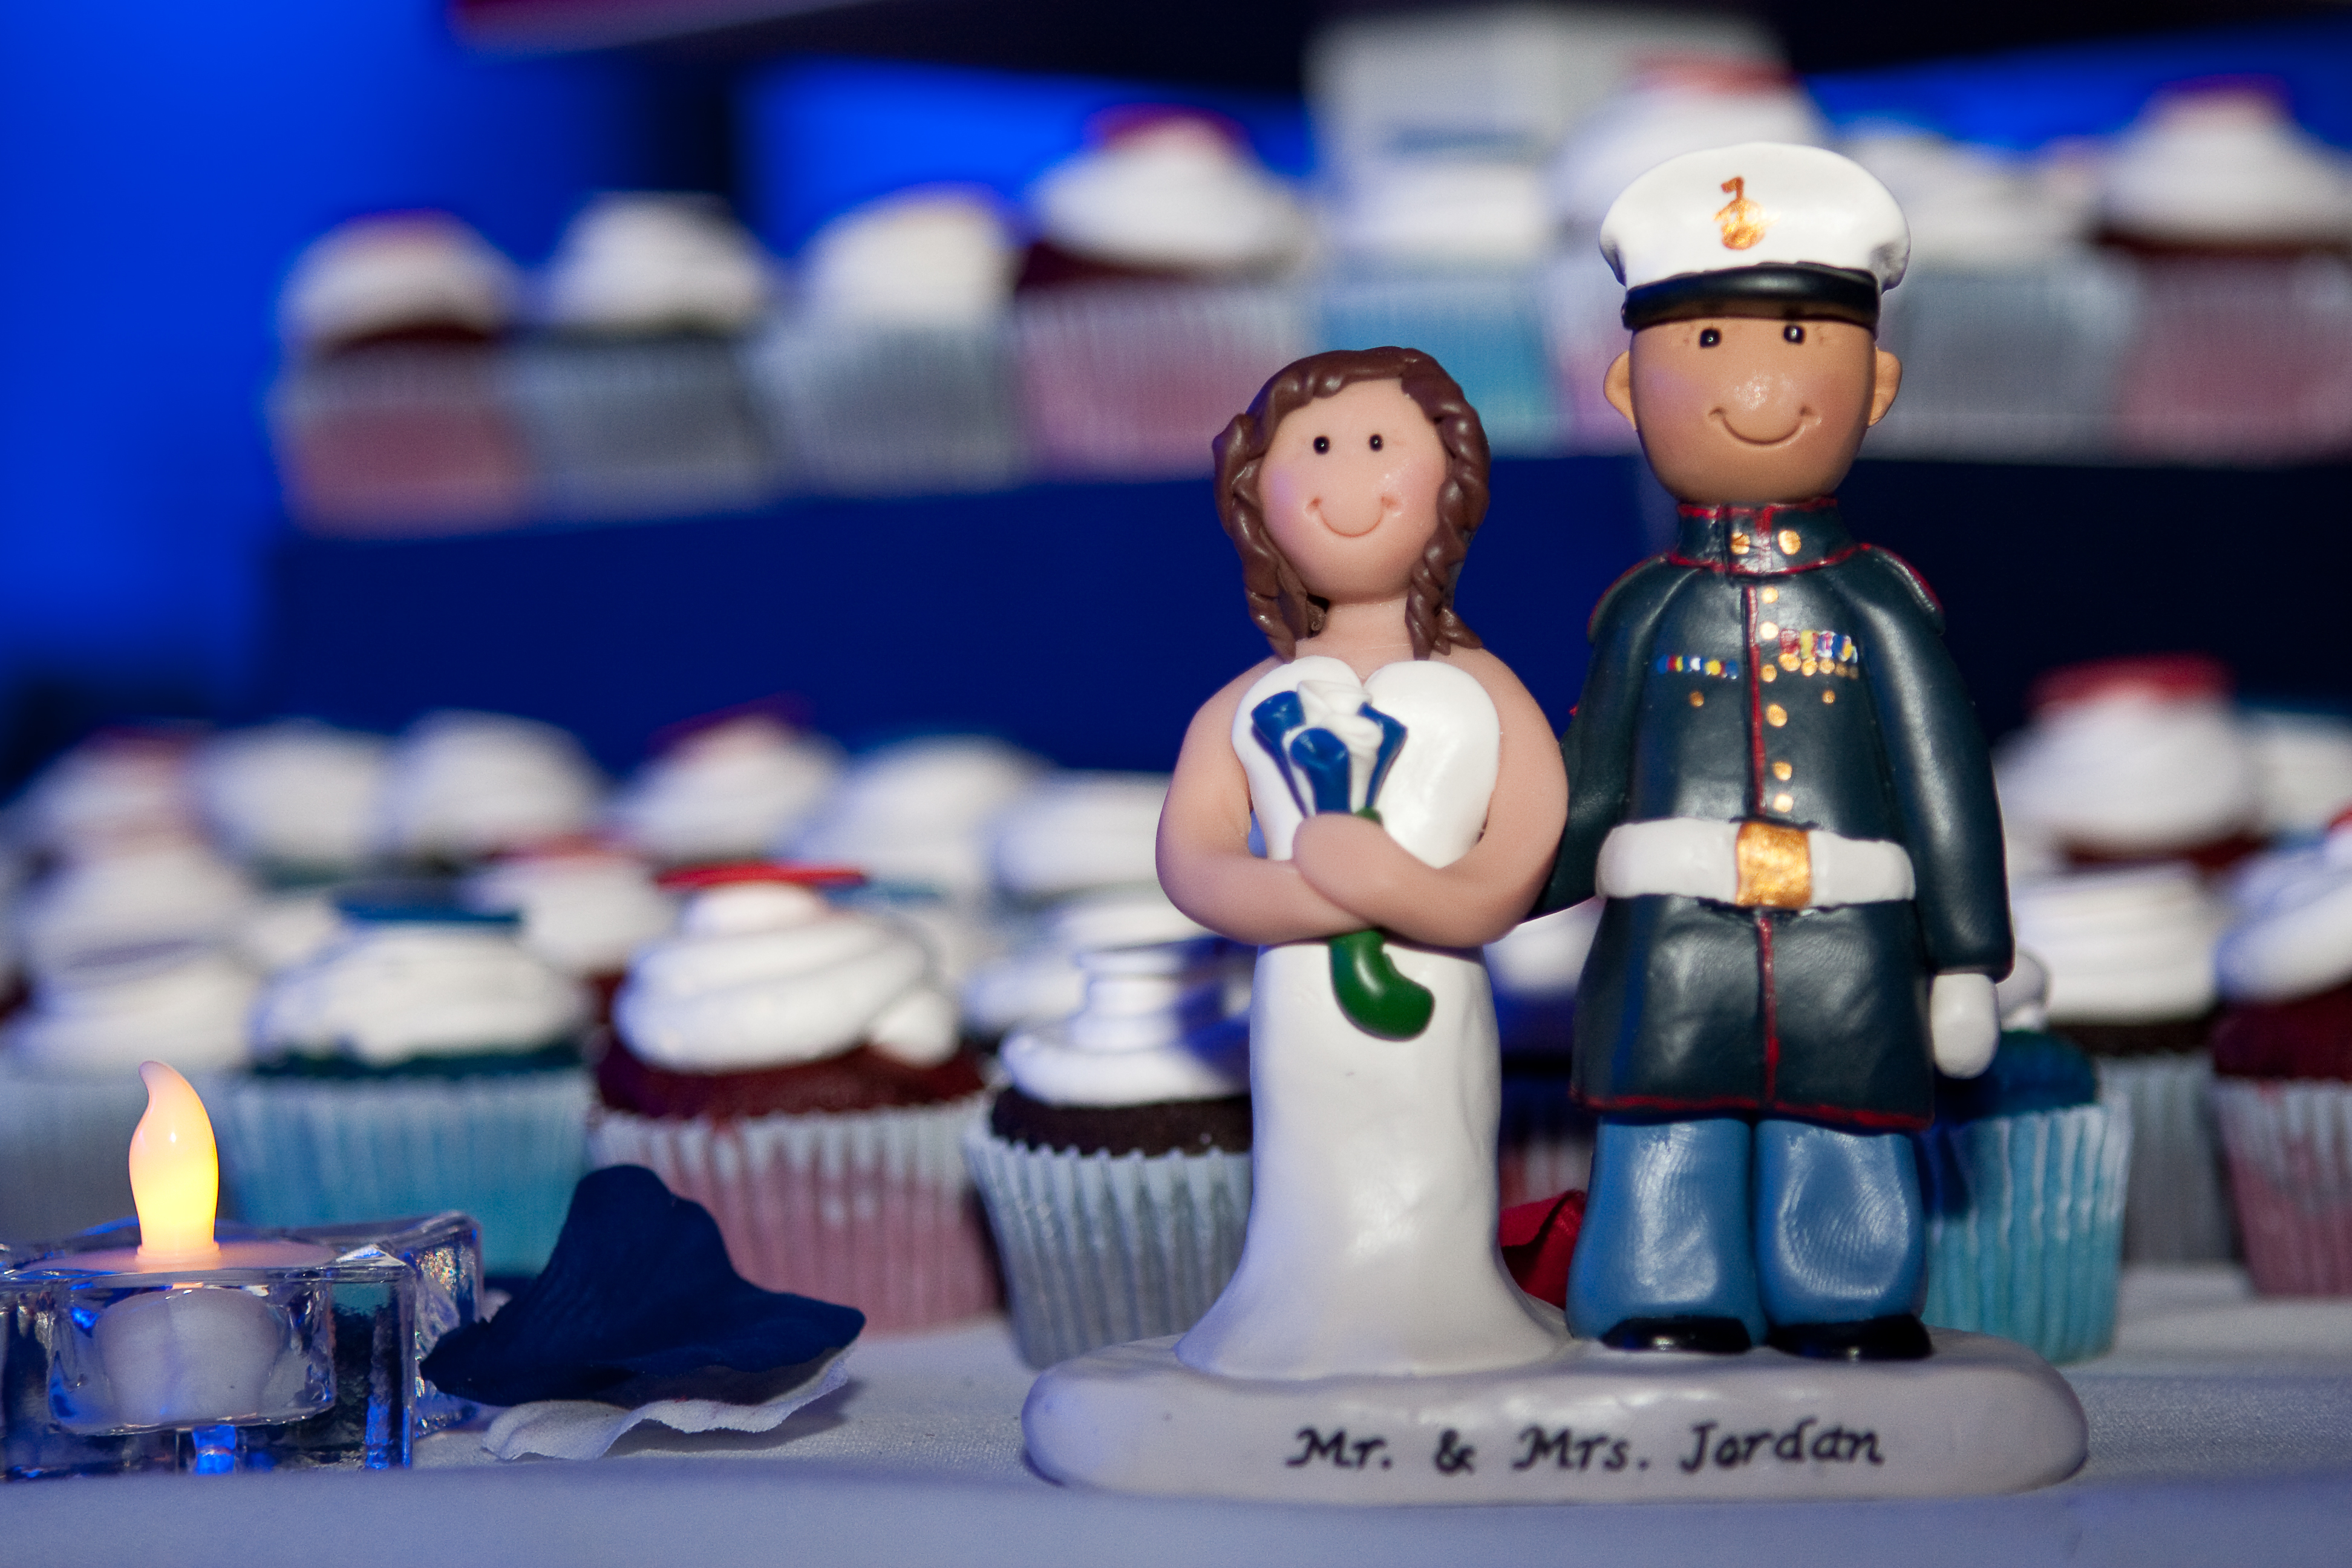 Reception, Flowers & Decor, Photography, Cakes, white, red, blue, cake, Sweet, Baseball, A, Design, Military, Marine, Hollis, Corps, Cari